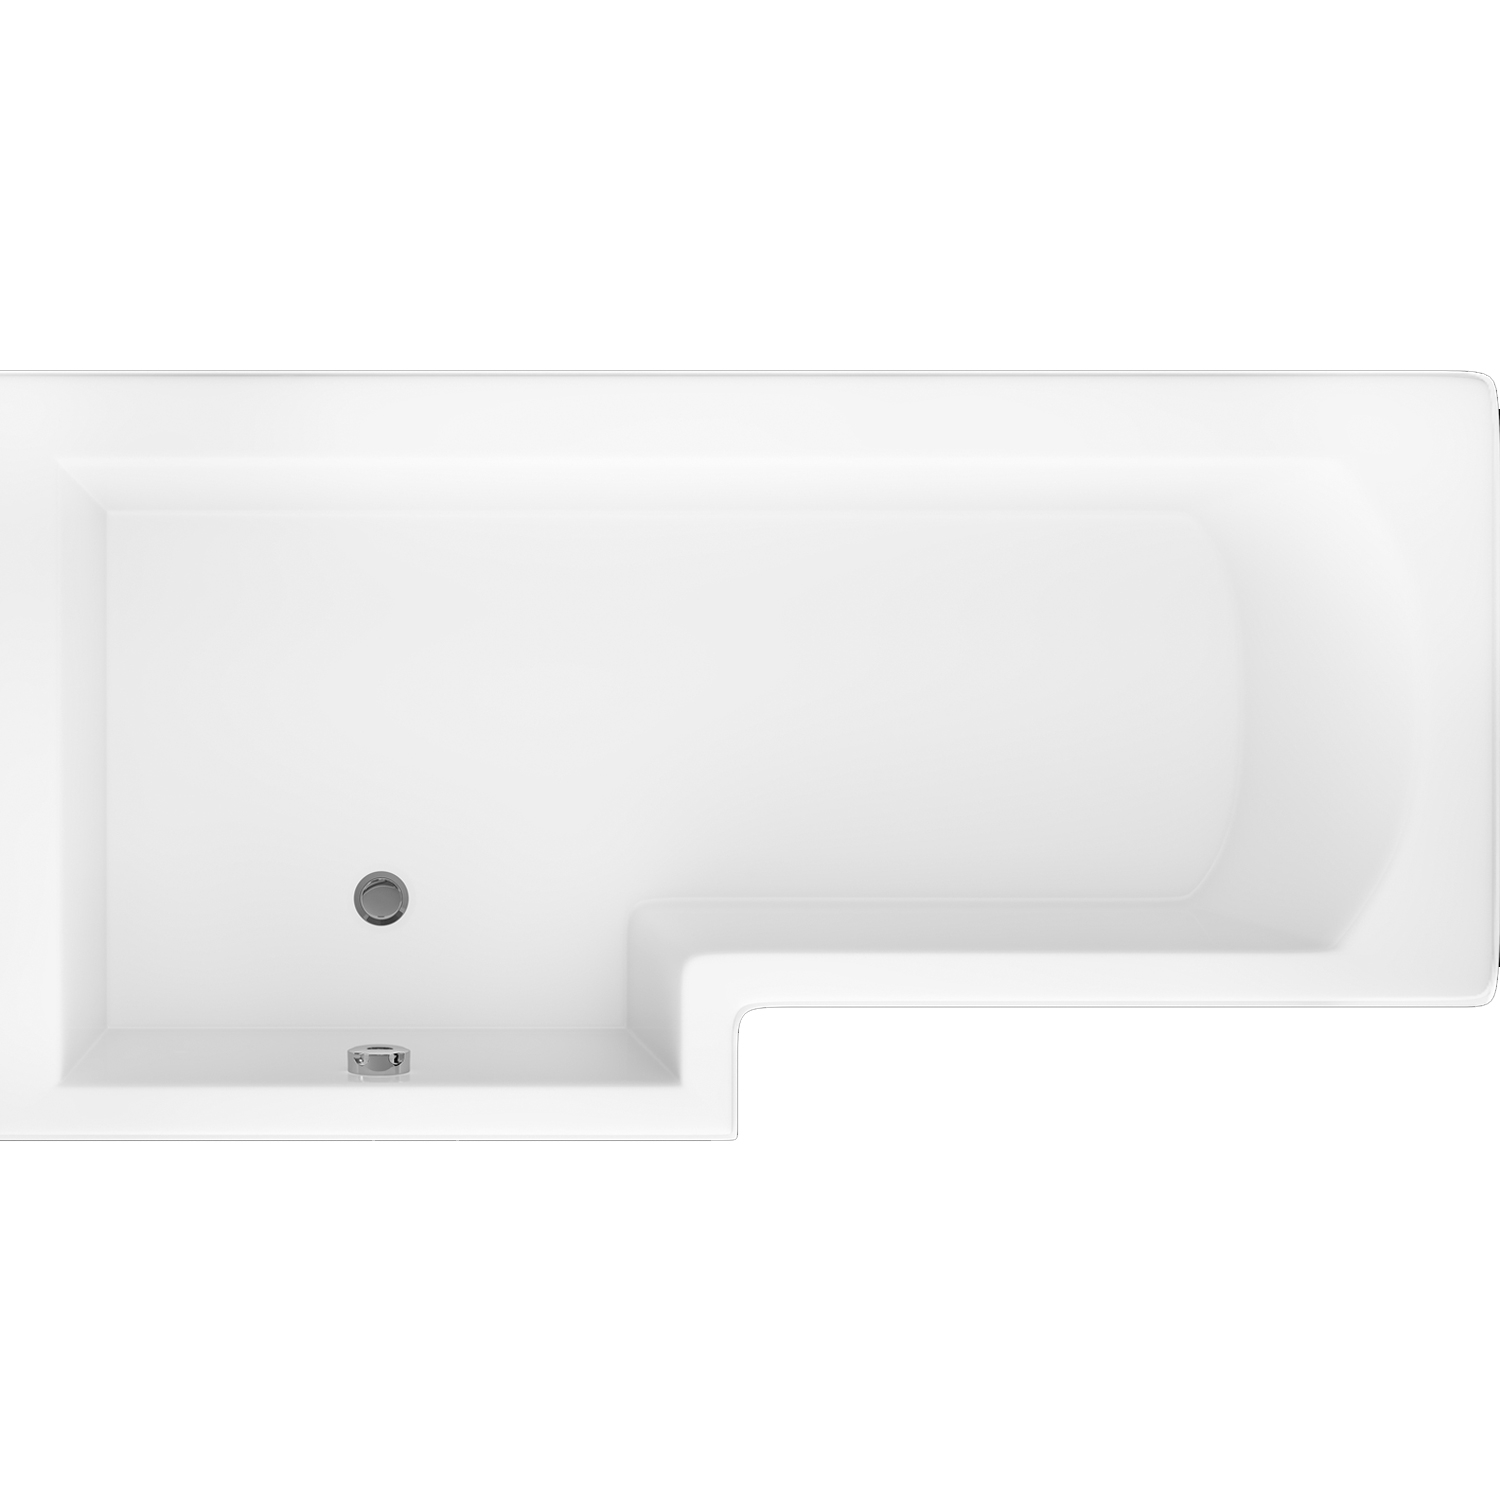 Cali Halle L-Shaped Shower Bath 1700mm x 700mm/850mm Left Handed